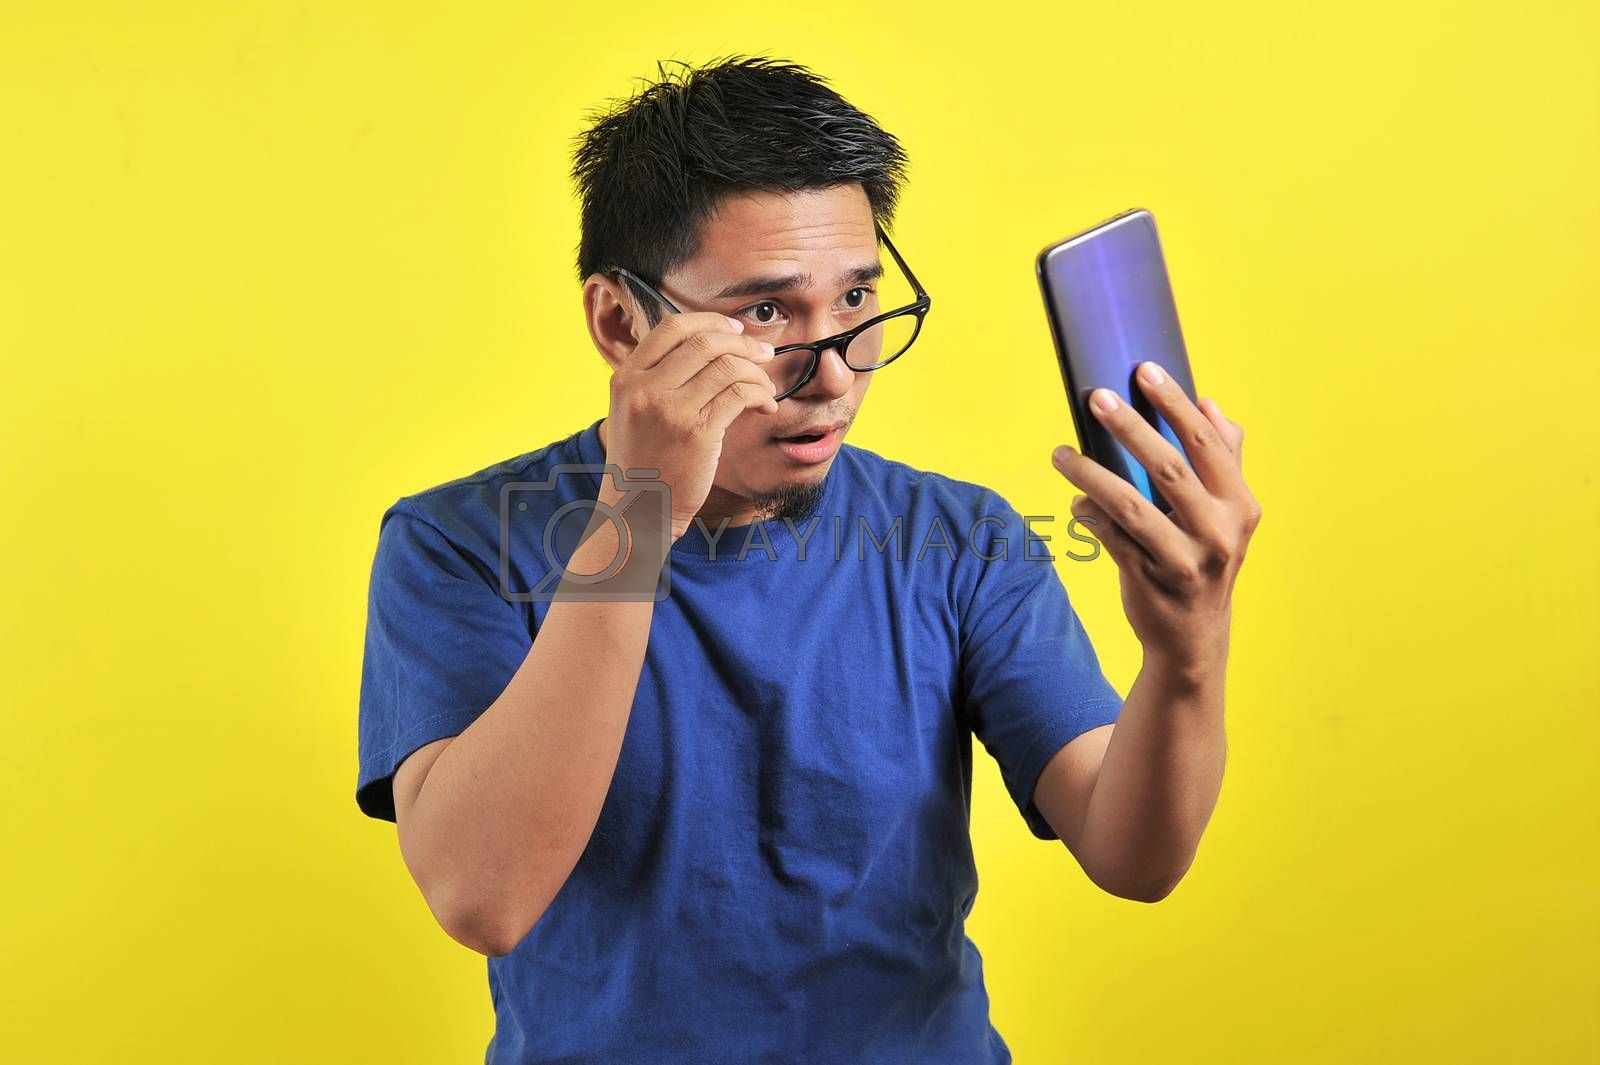 Asian man shocked what he see in the smartphone, isolated on yellow background